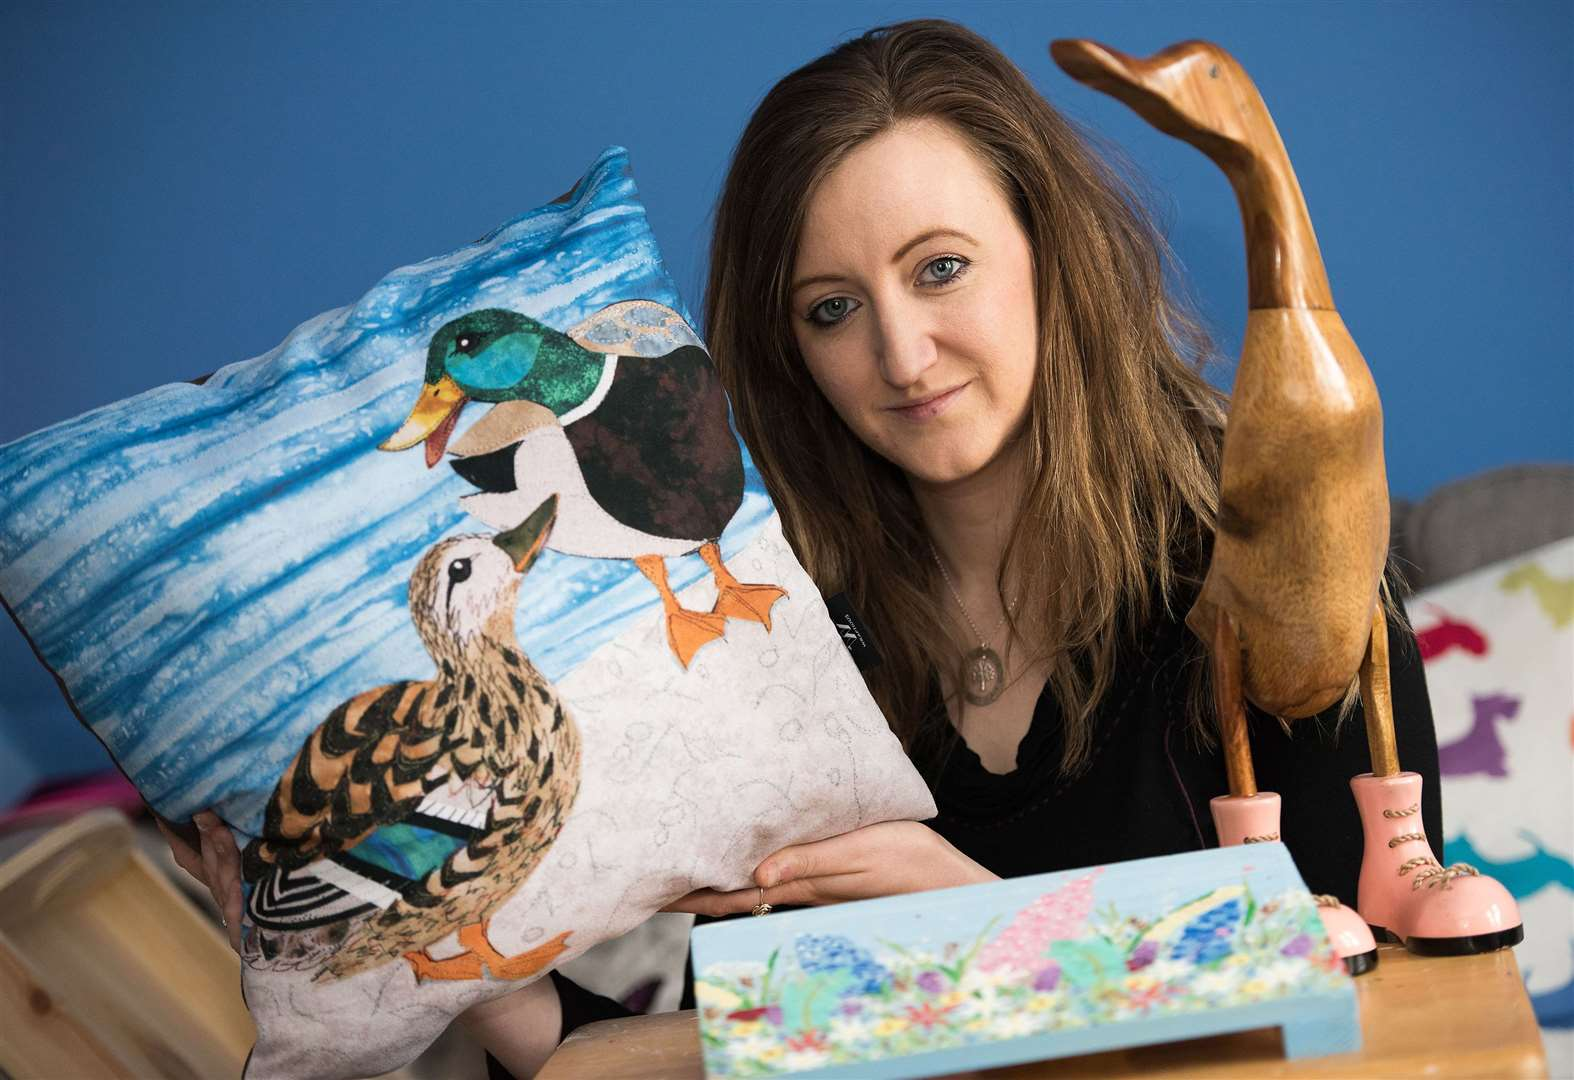 Sudbury arts and crafts shop Duck in Boots set to expand into larger premises